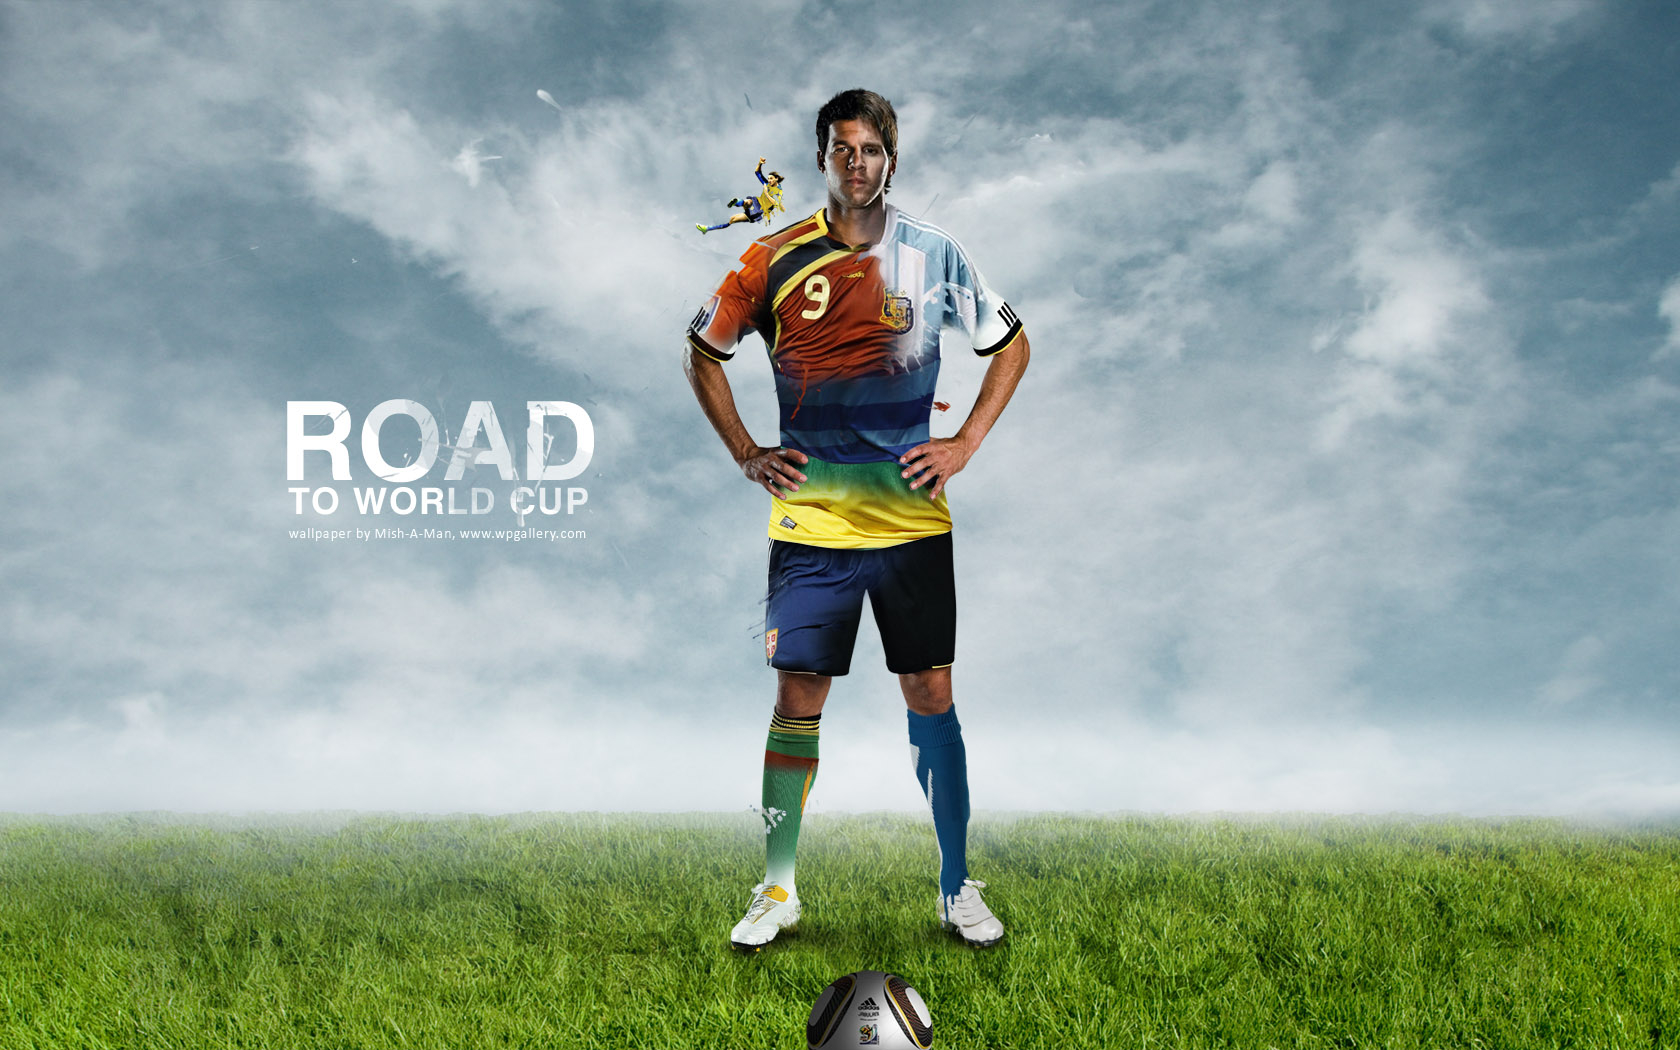 Road to World Cup by Mish-A-Man